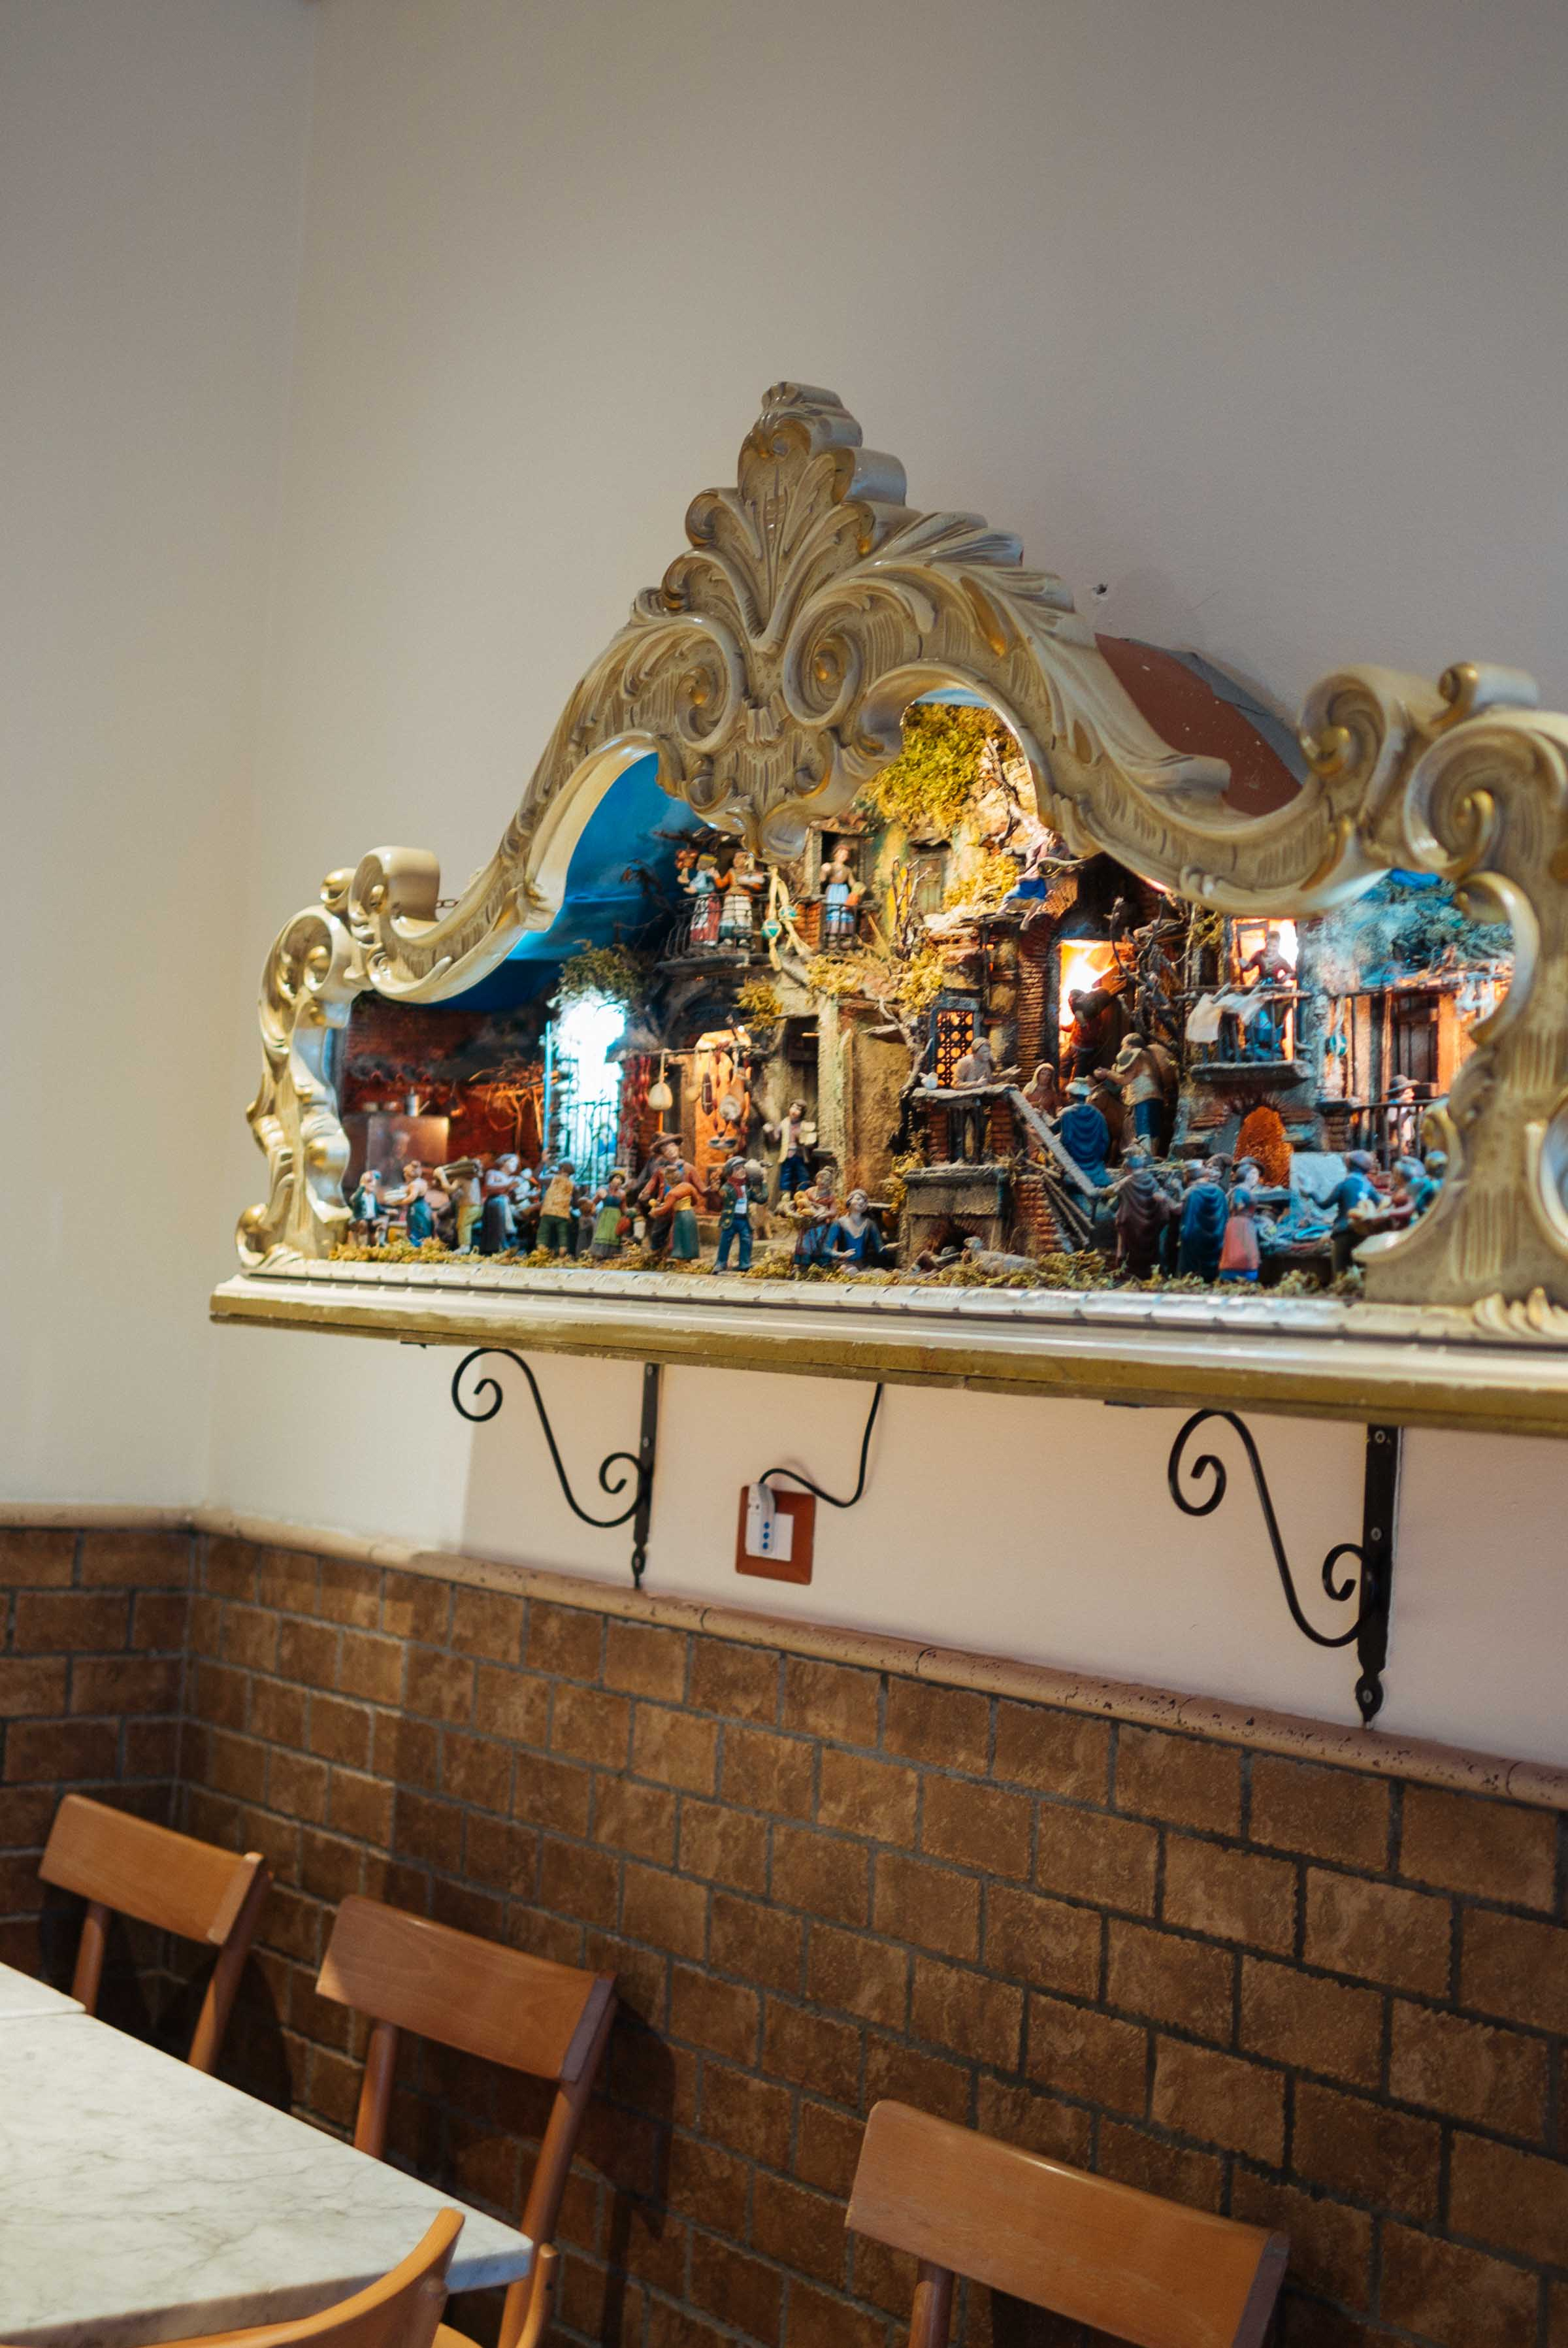 Go to this pizzeria in Napoli for the best pizza in Italy. Simple restaurant decor including this nativity scene. #pizza #nativity #christmas #italy